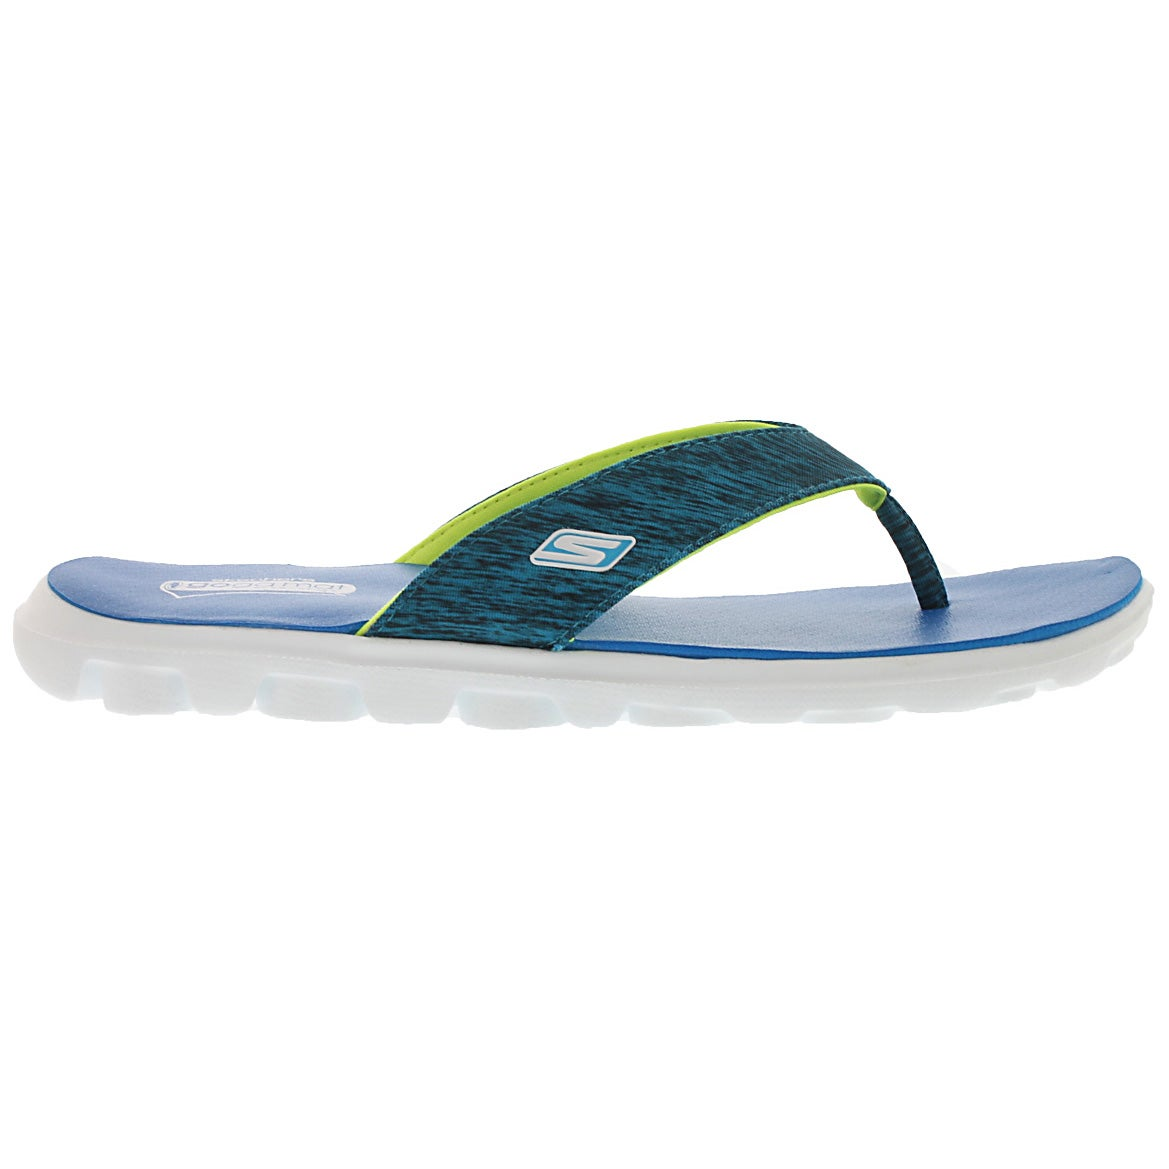 Lds Flow blue thong sandal